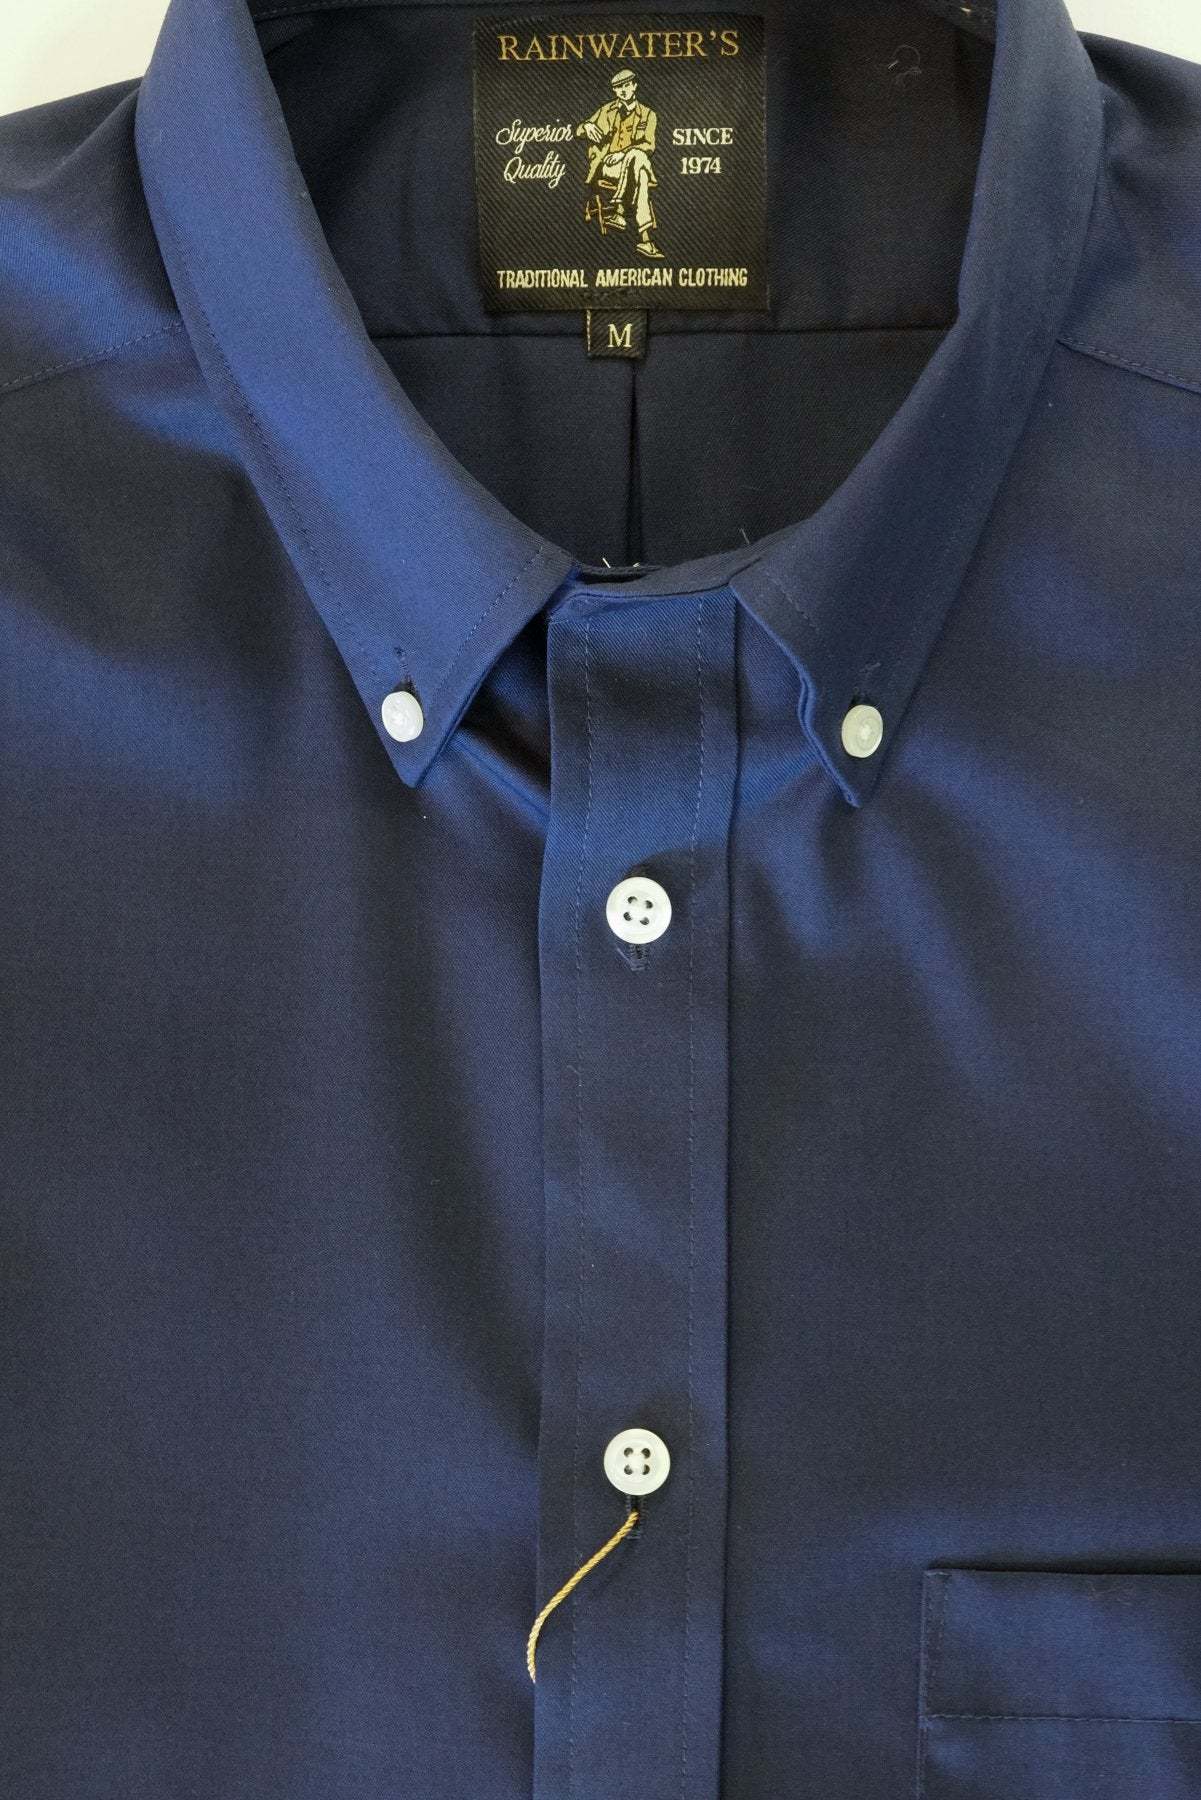 Solid Navy Twill Blend Wrinkle Free Button Down Sport Shirt by Rainwater's - Rainwater's